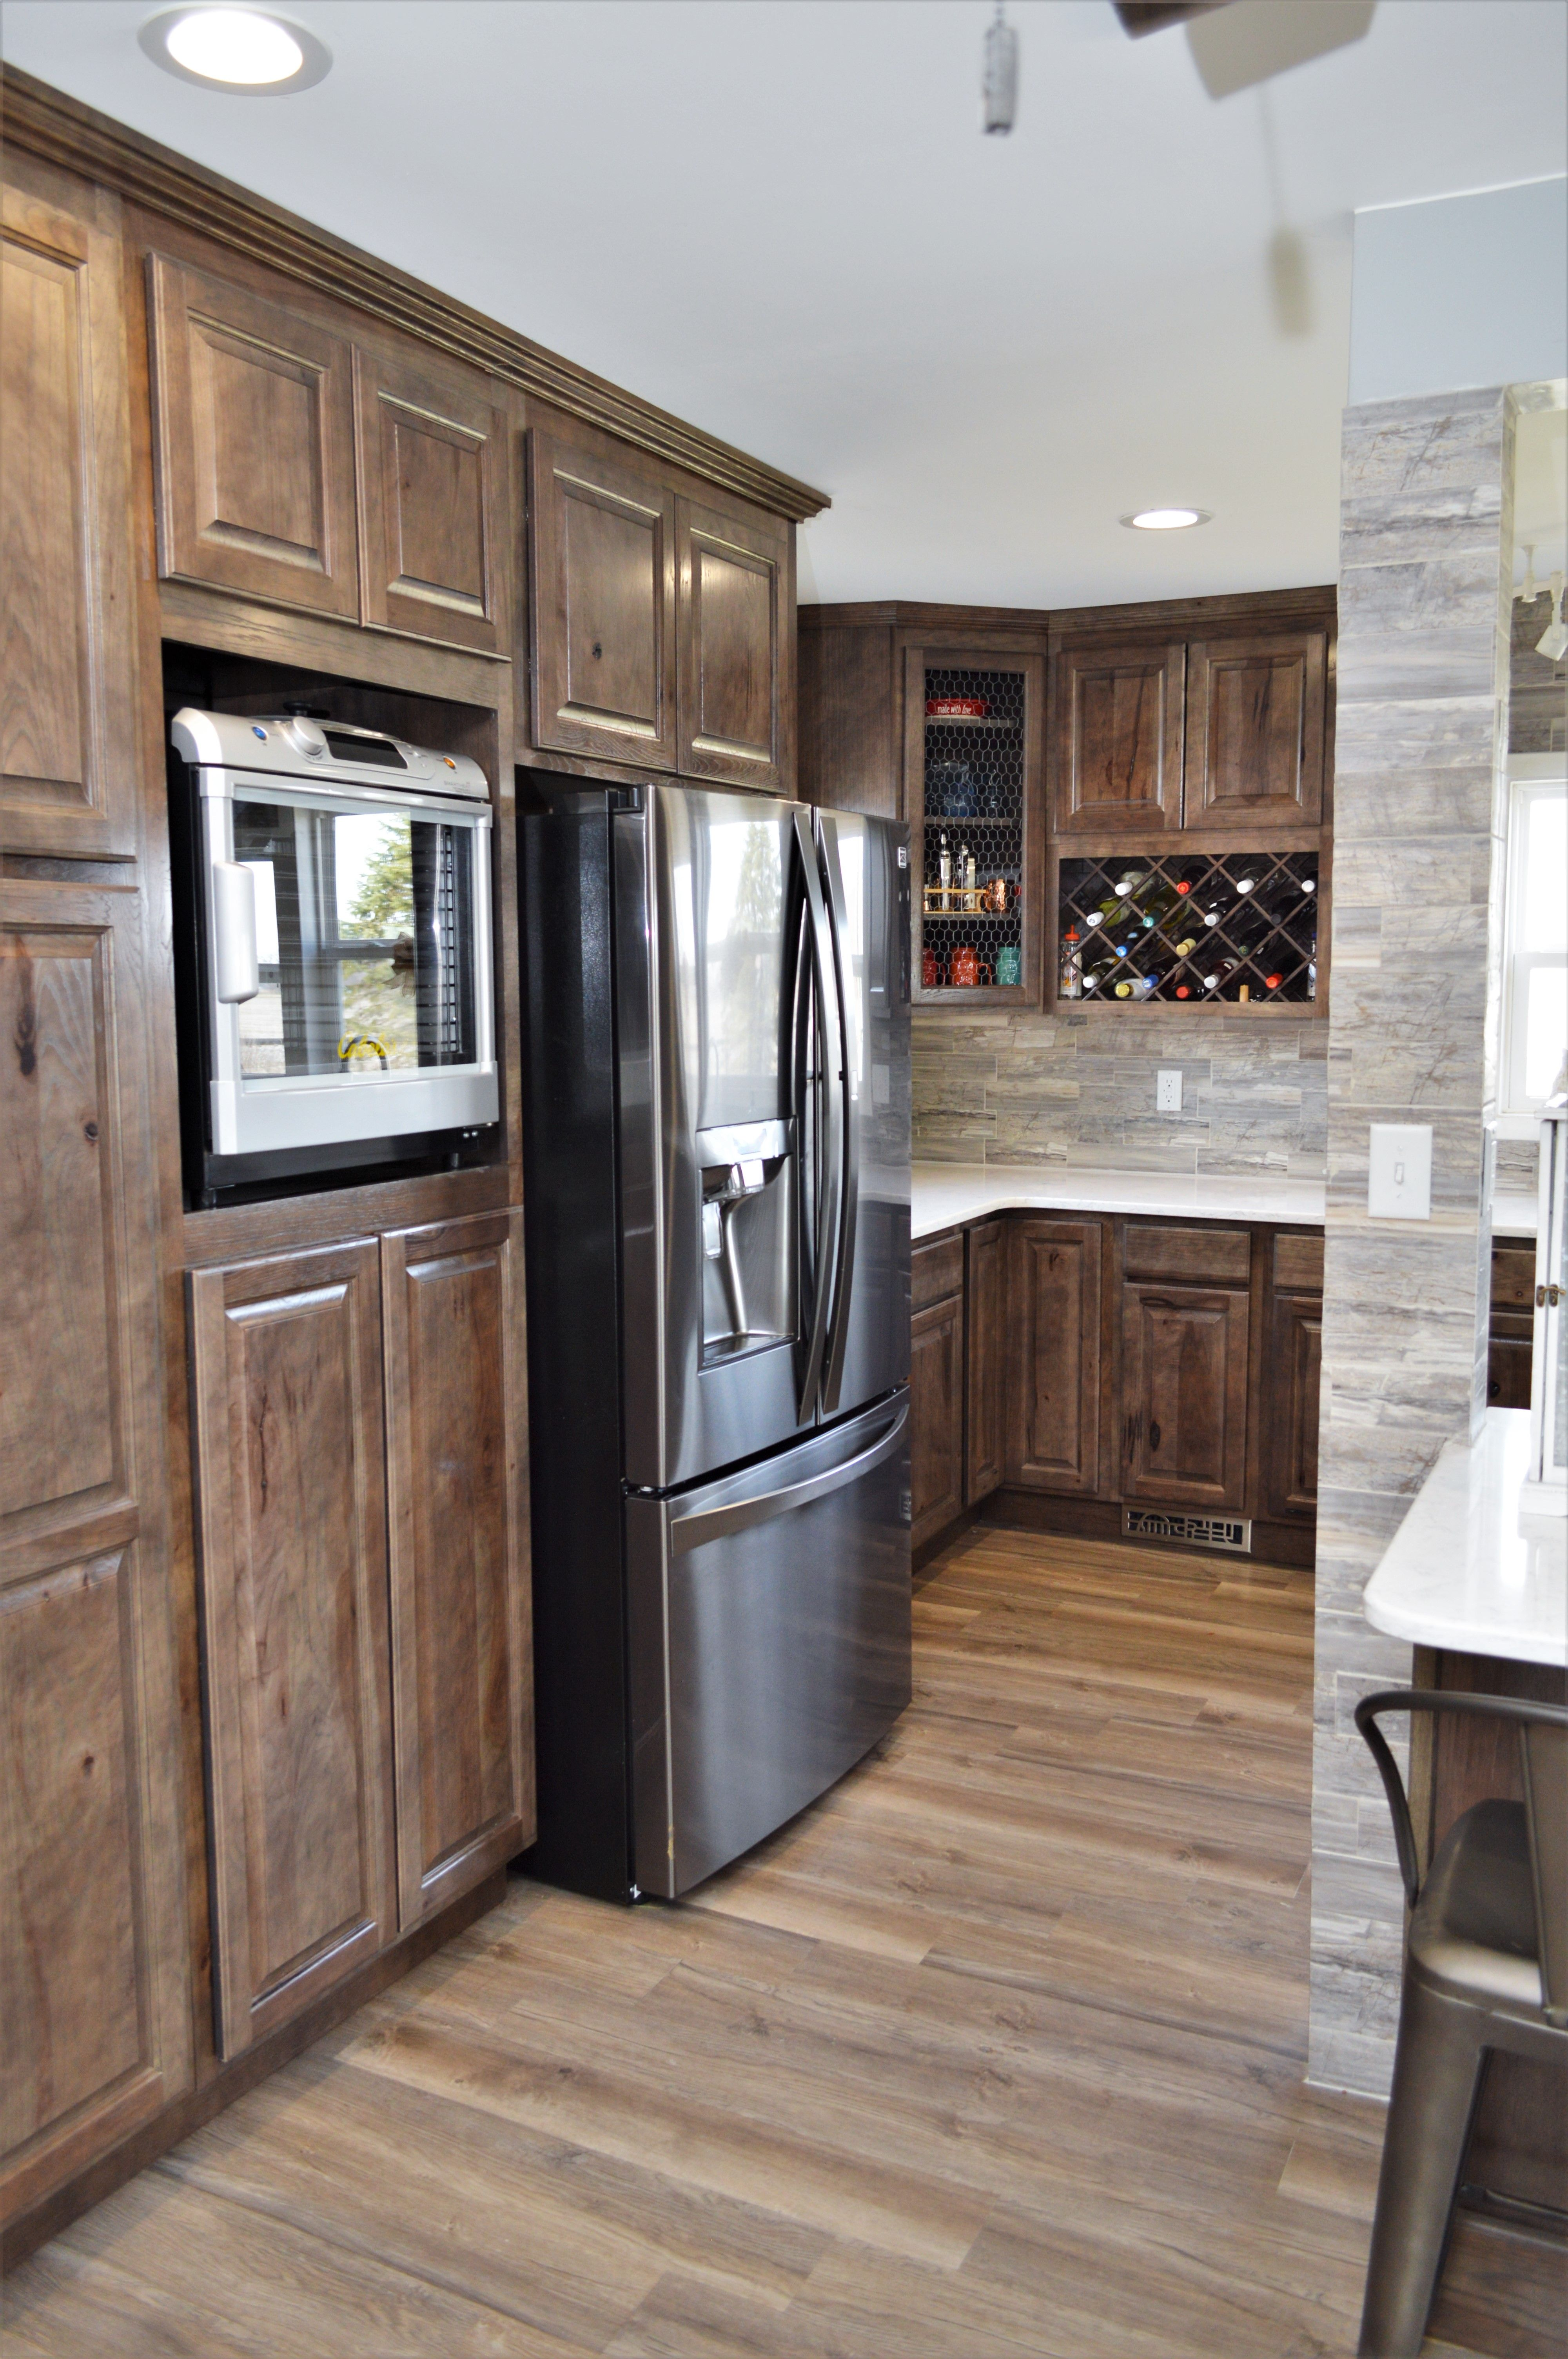 Superbe Baileyu0027s Cabinets, Haas Signature Collection, Rustic Hickory, Caraway  Finish (discontinued), Federal Square Door Style